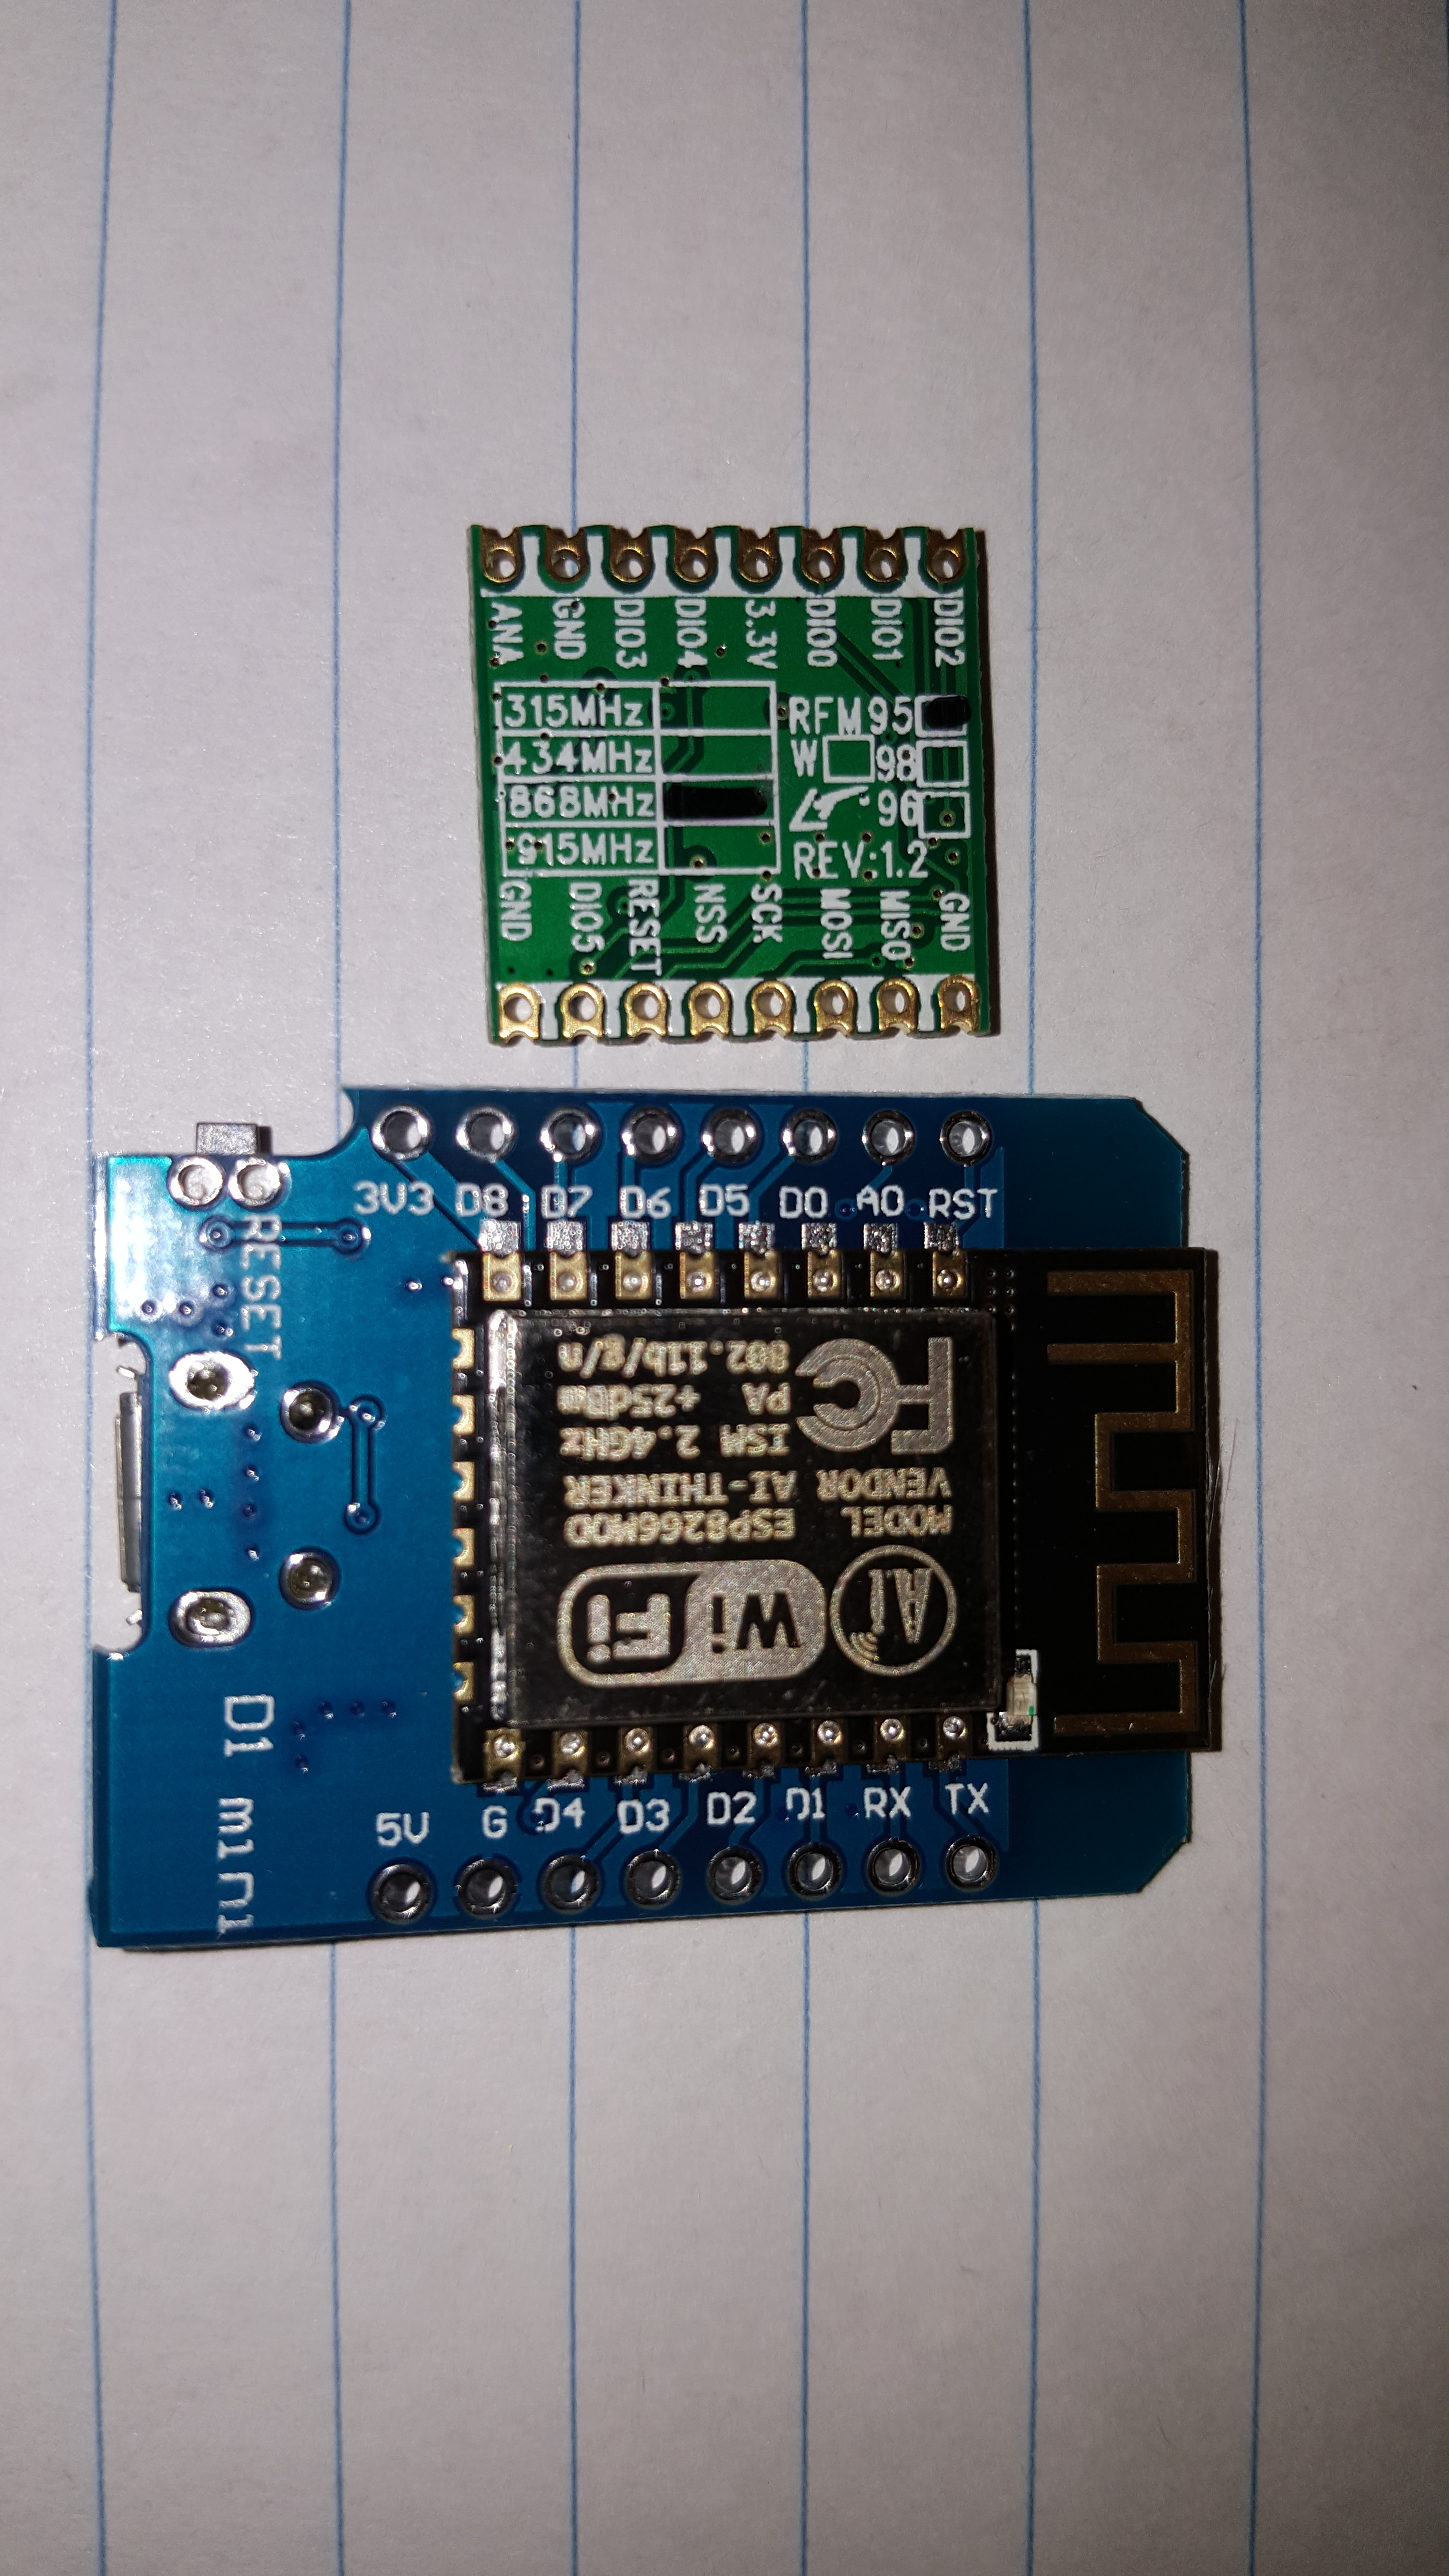 How should I wire an RFM95 to an ESP8266/WeMos D1 mini? - End